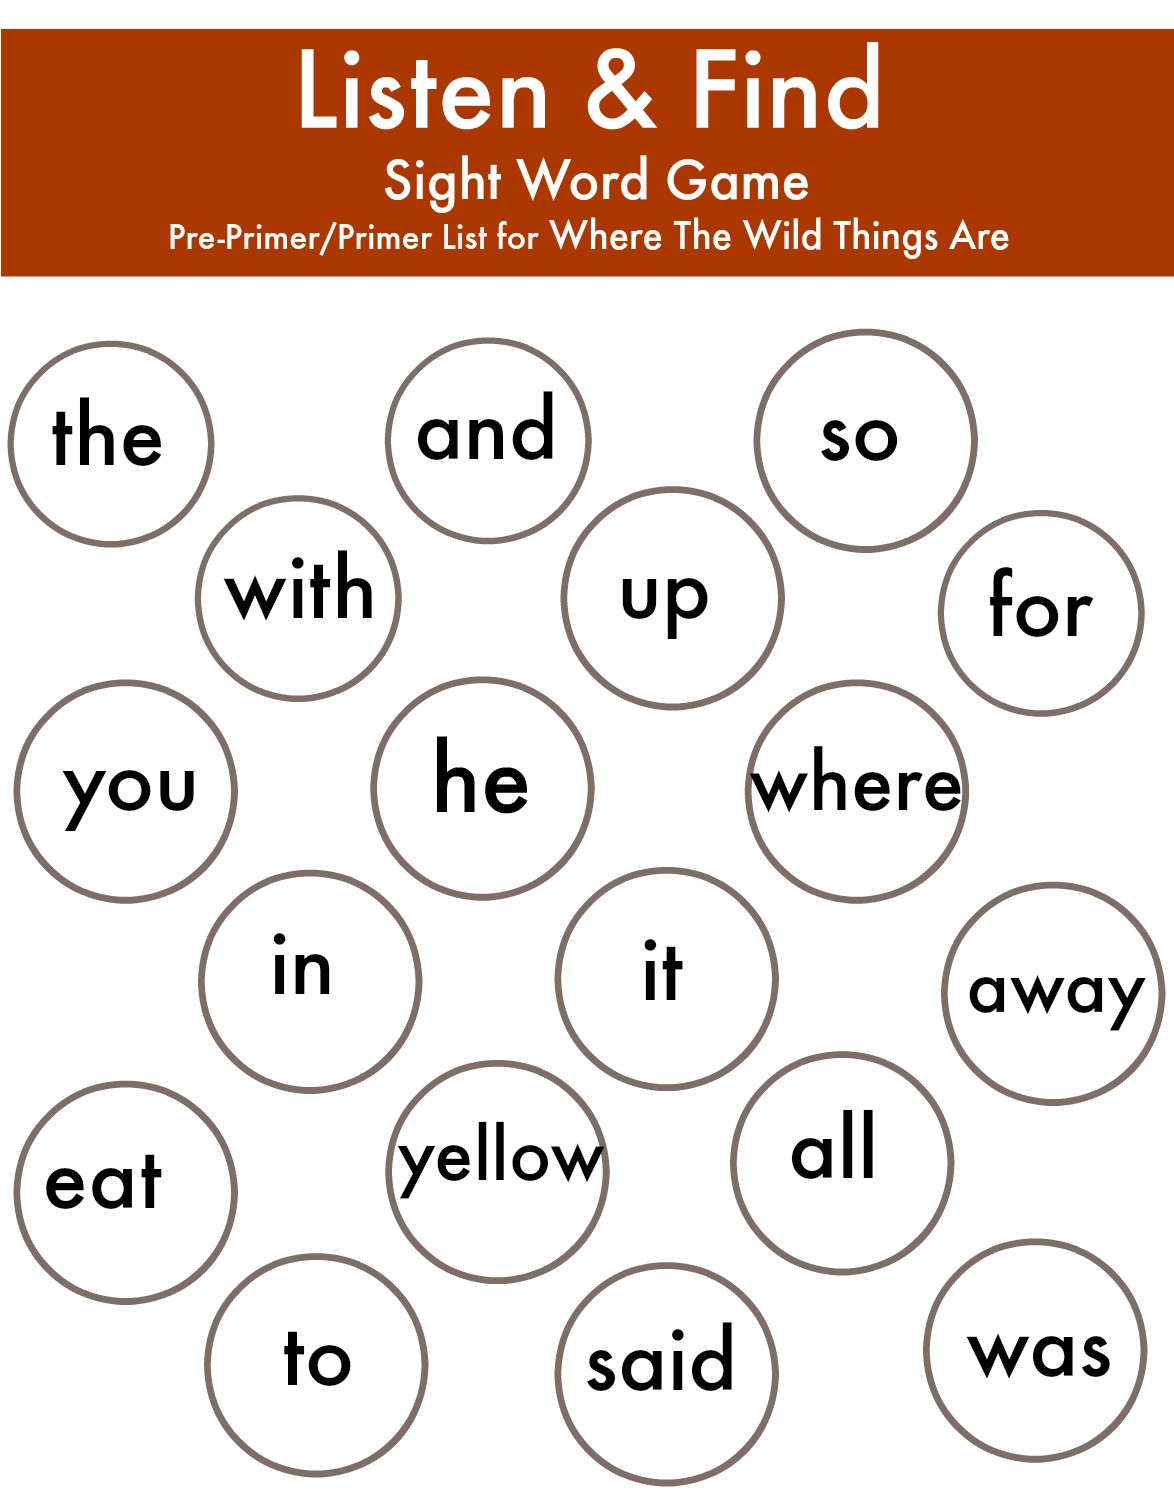 Where The Wild Things Are - Listen & Find Sight Word Activities ...